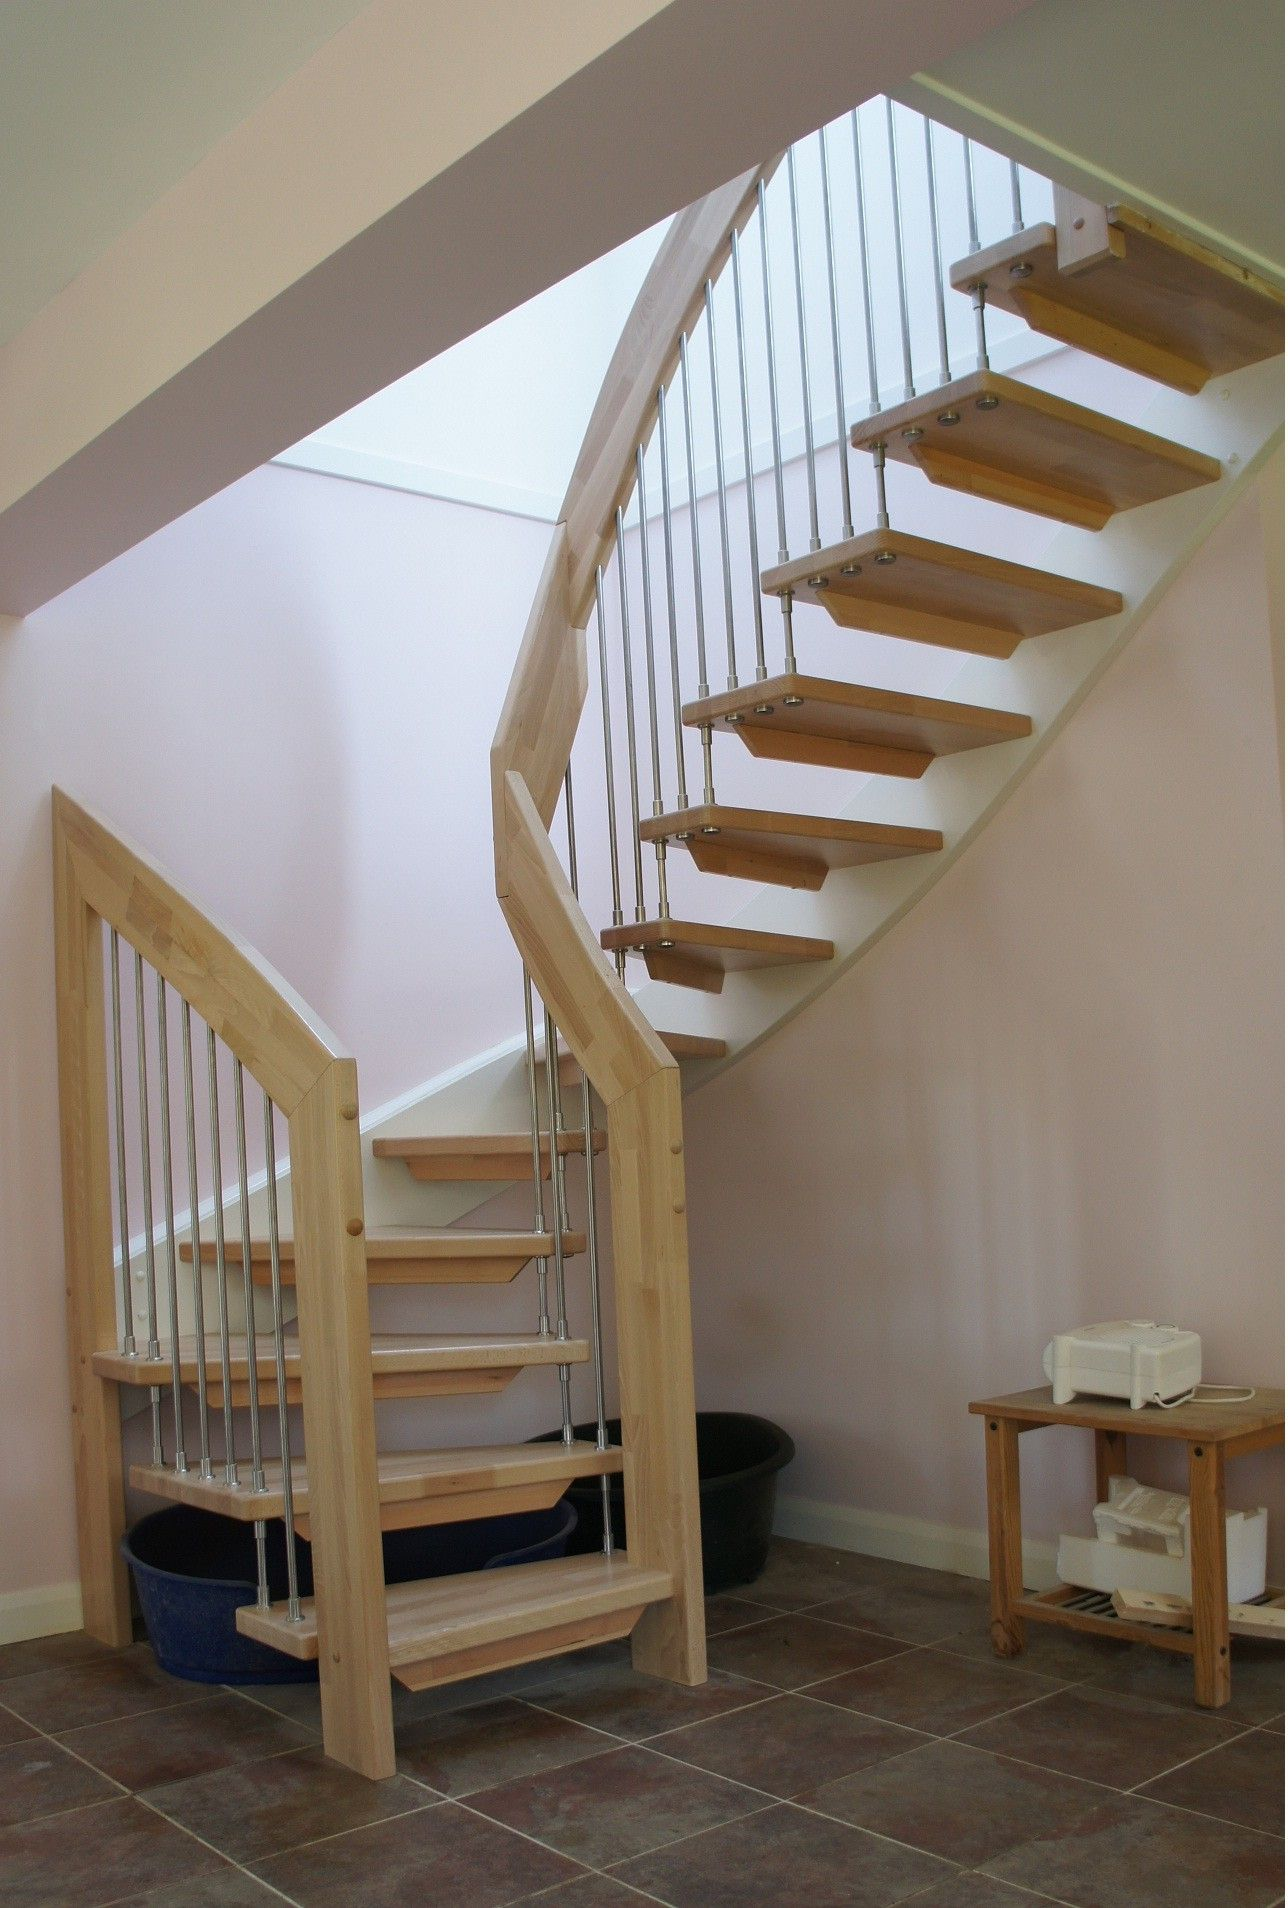 Simple Design Ideas Of Small Space Staircase With Brown ...